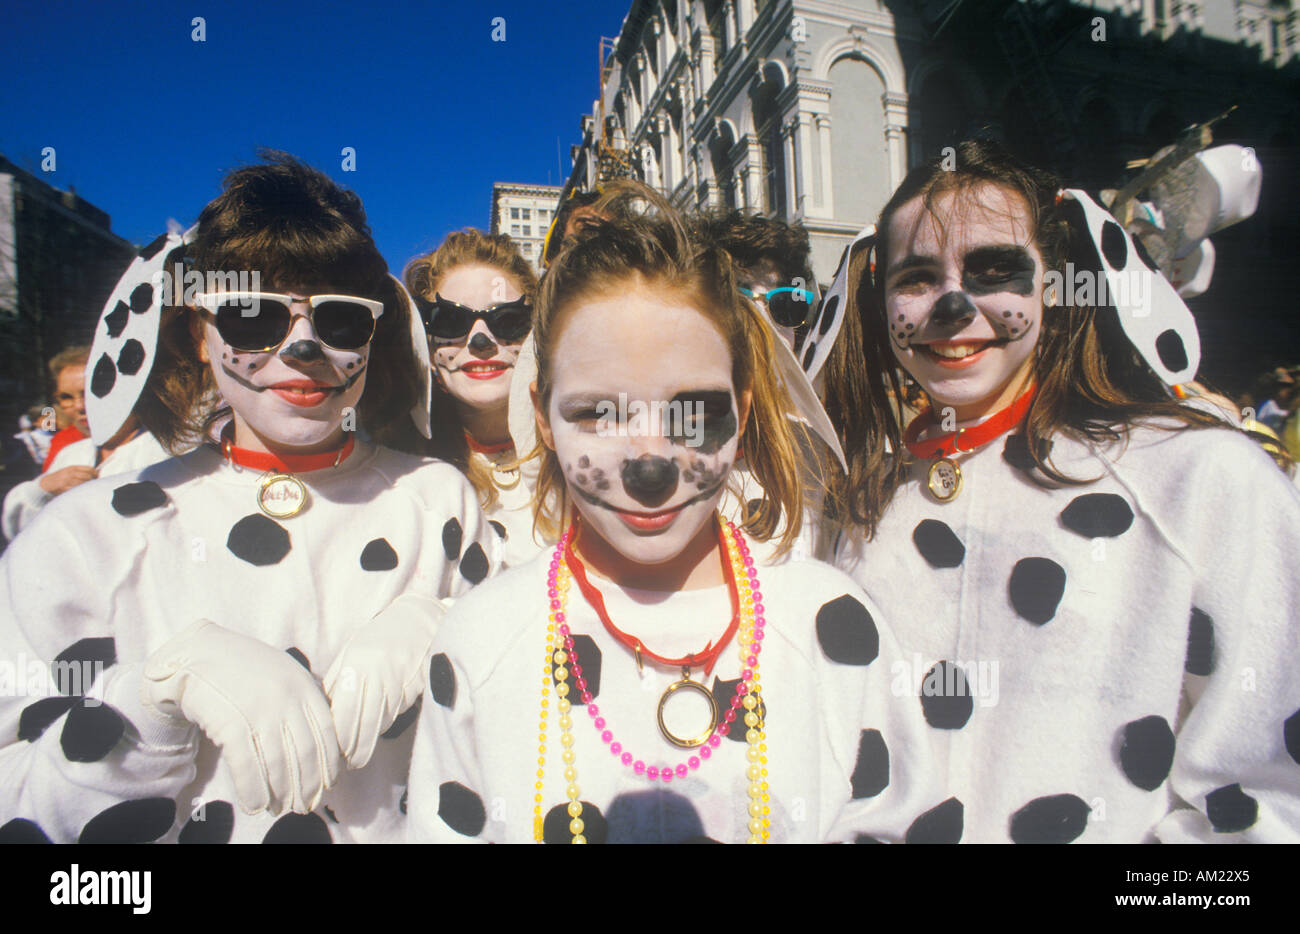 Little Girls Dressed in Mardi Gras Dalmatian Costumes New Orleans Louisiana  sc 1 st  Alamy & Little Girls Dressed in Mardi Gras Dalmatian Costumes New Orleans ...